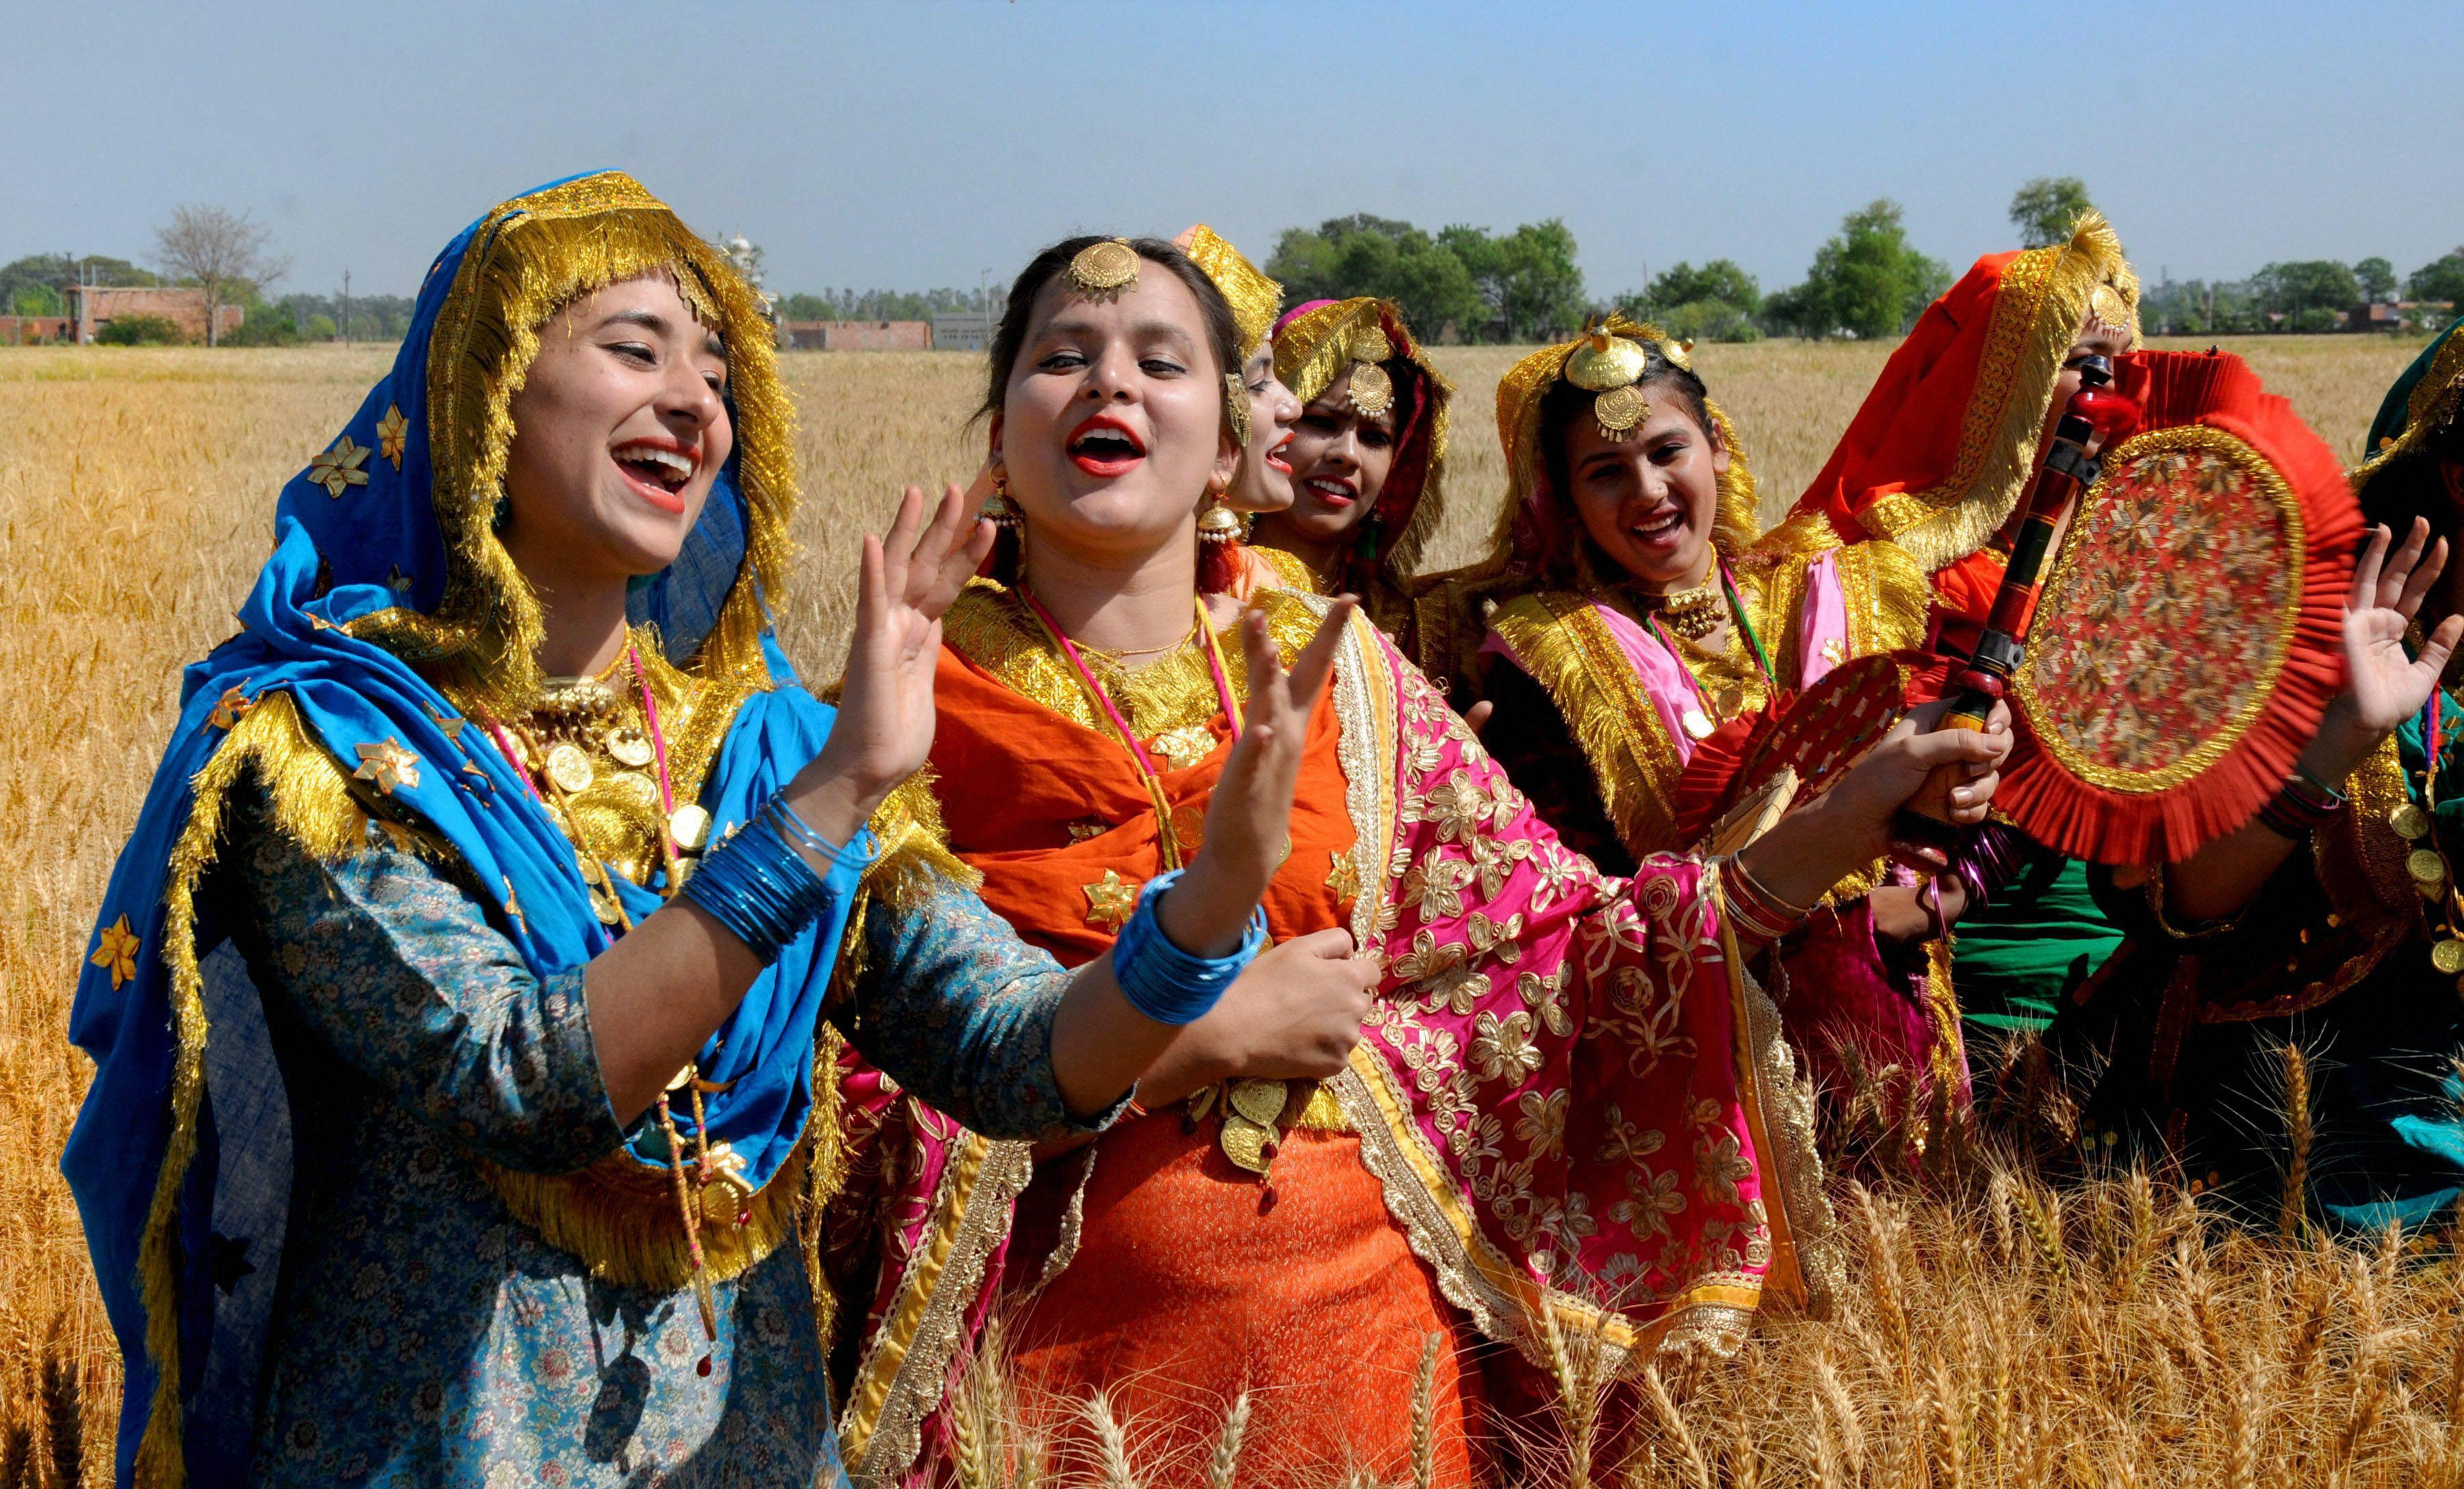 Happy Baisakhi 2017 Celebrity Wishes On The Occasion And All You Need To Know About The Festival